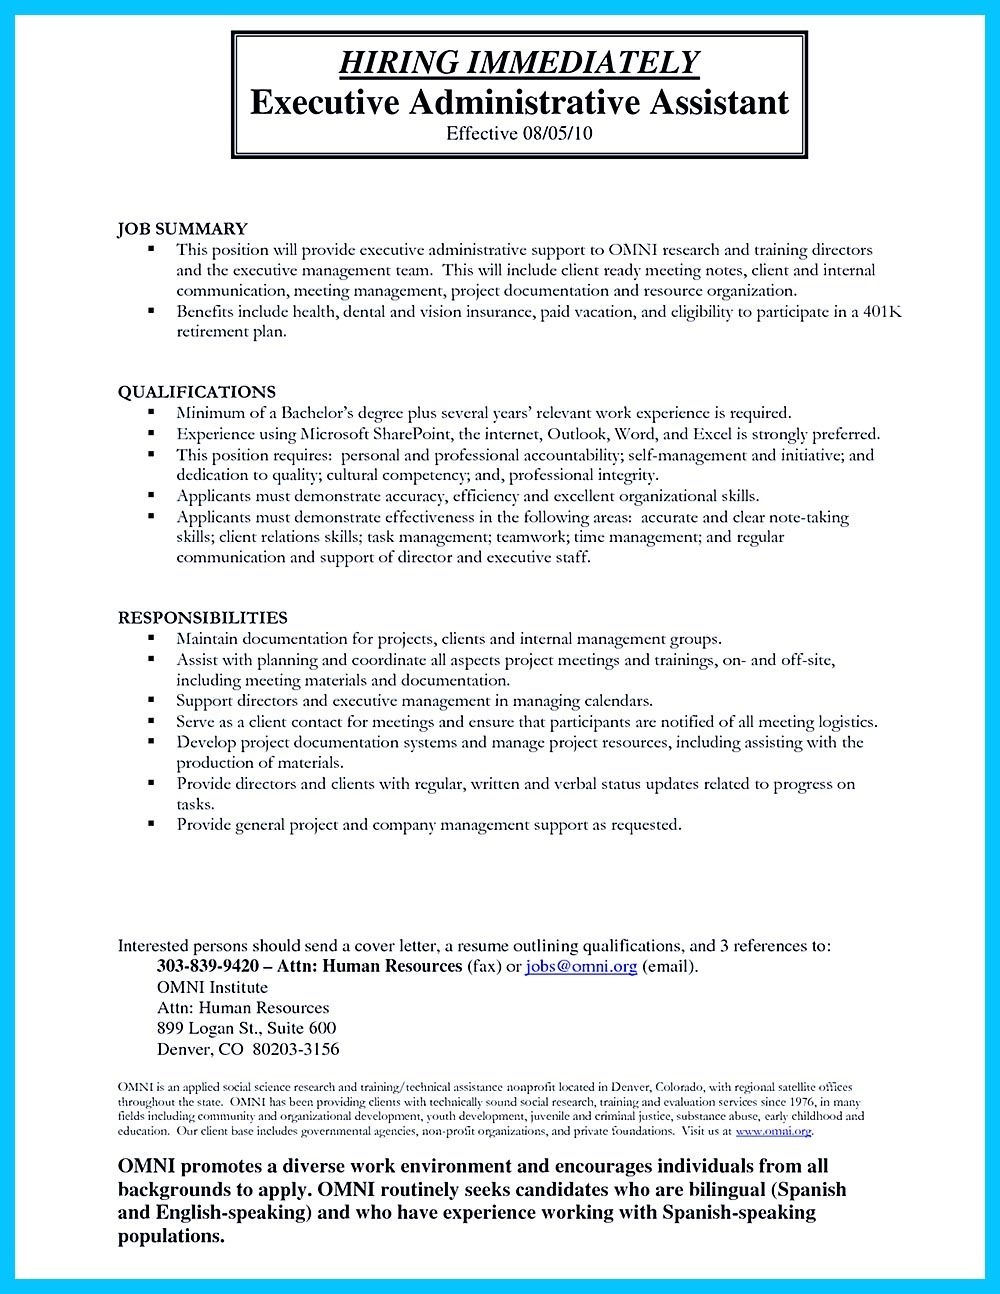 How To Write An Entry Level Resume Amusing In Writing Entry Level Administrative Assistant Resume You Need To .